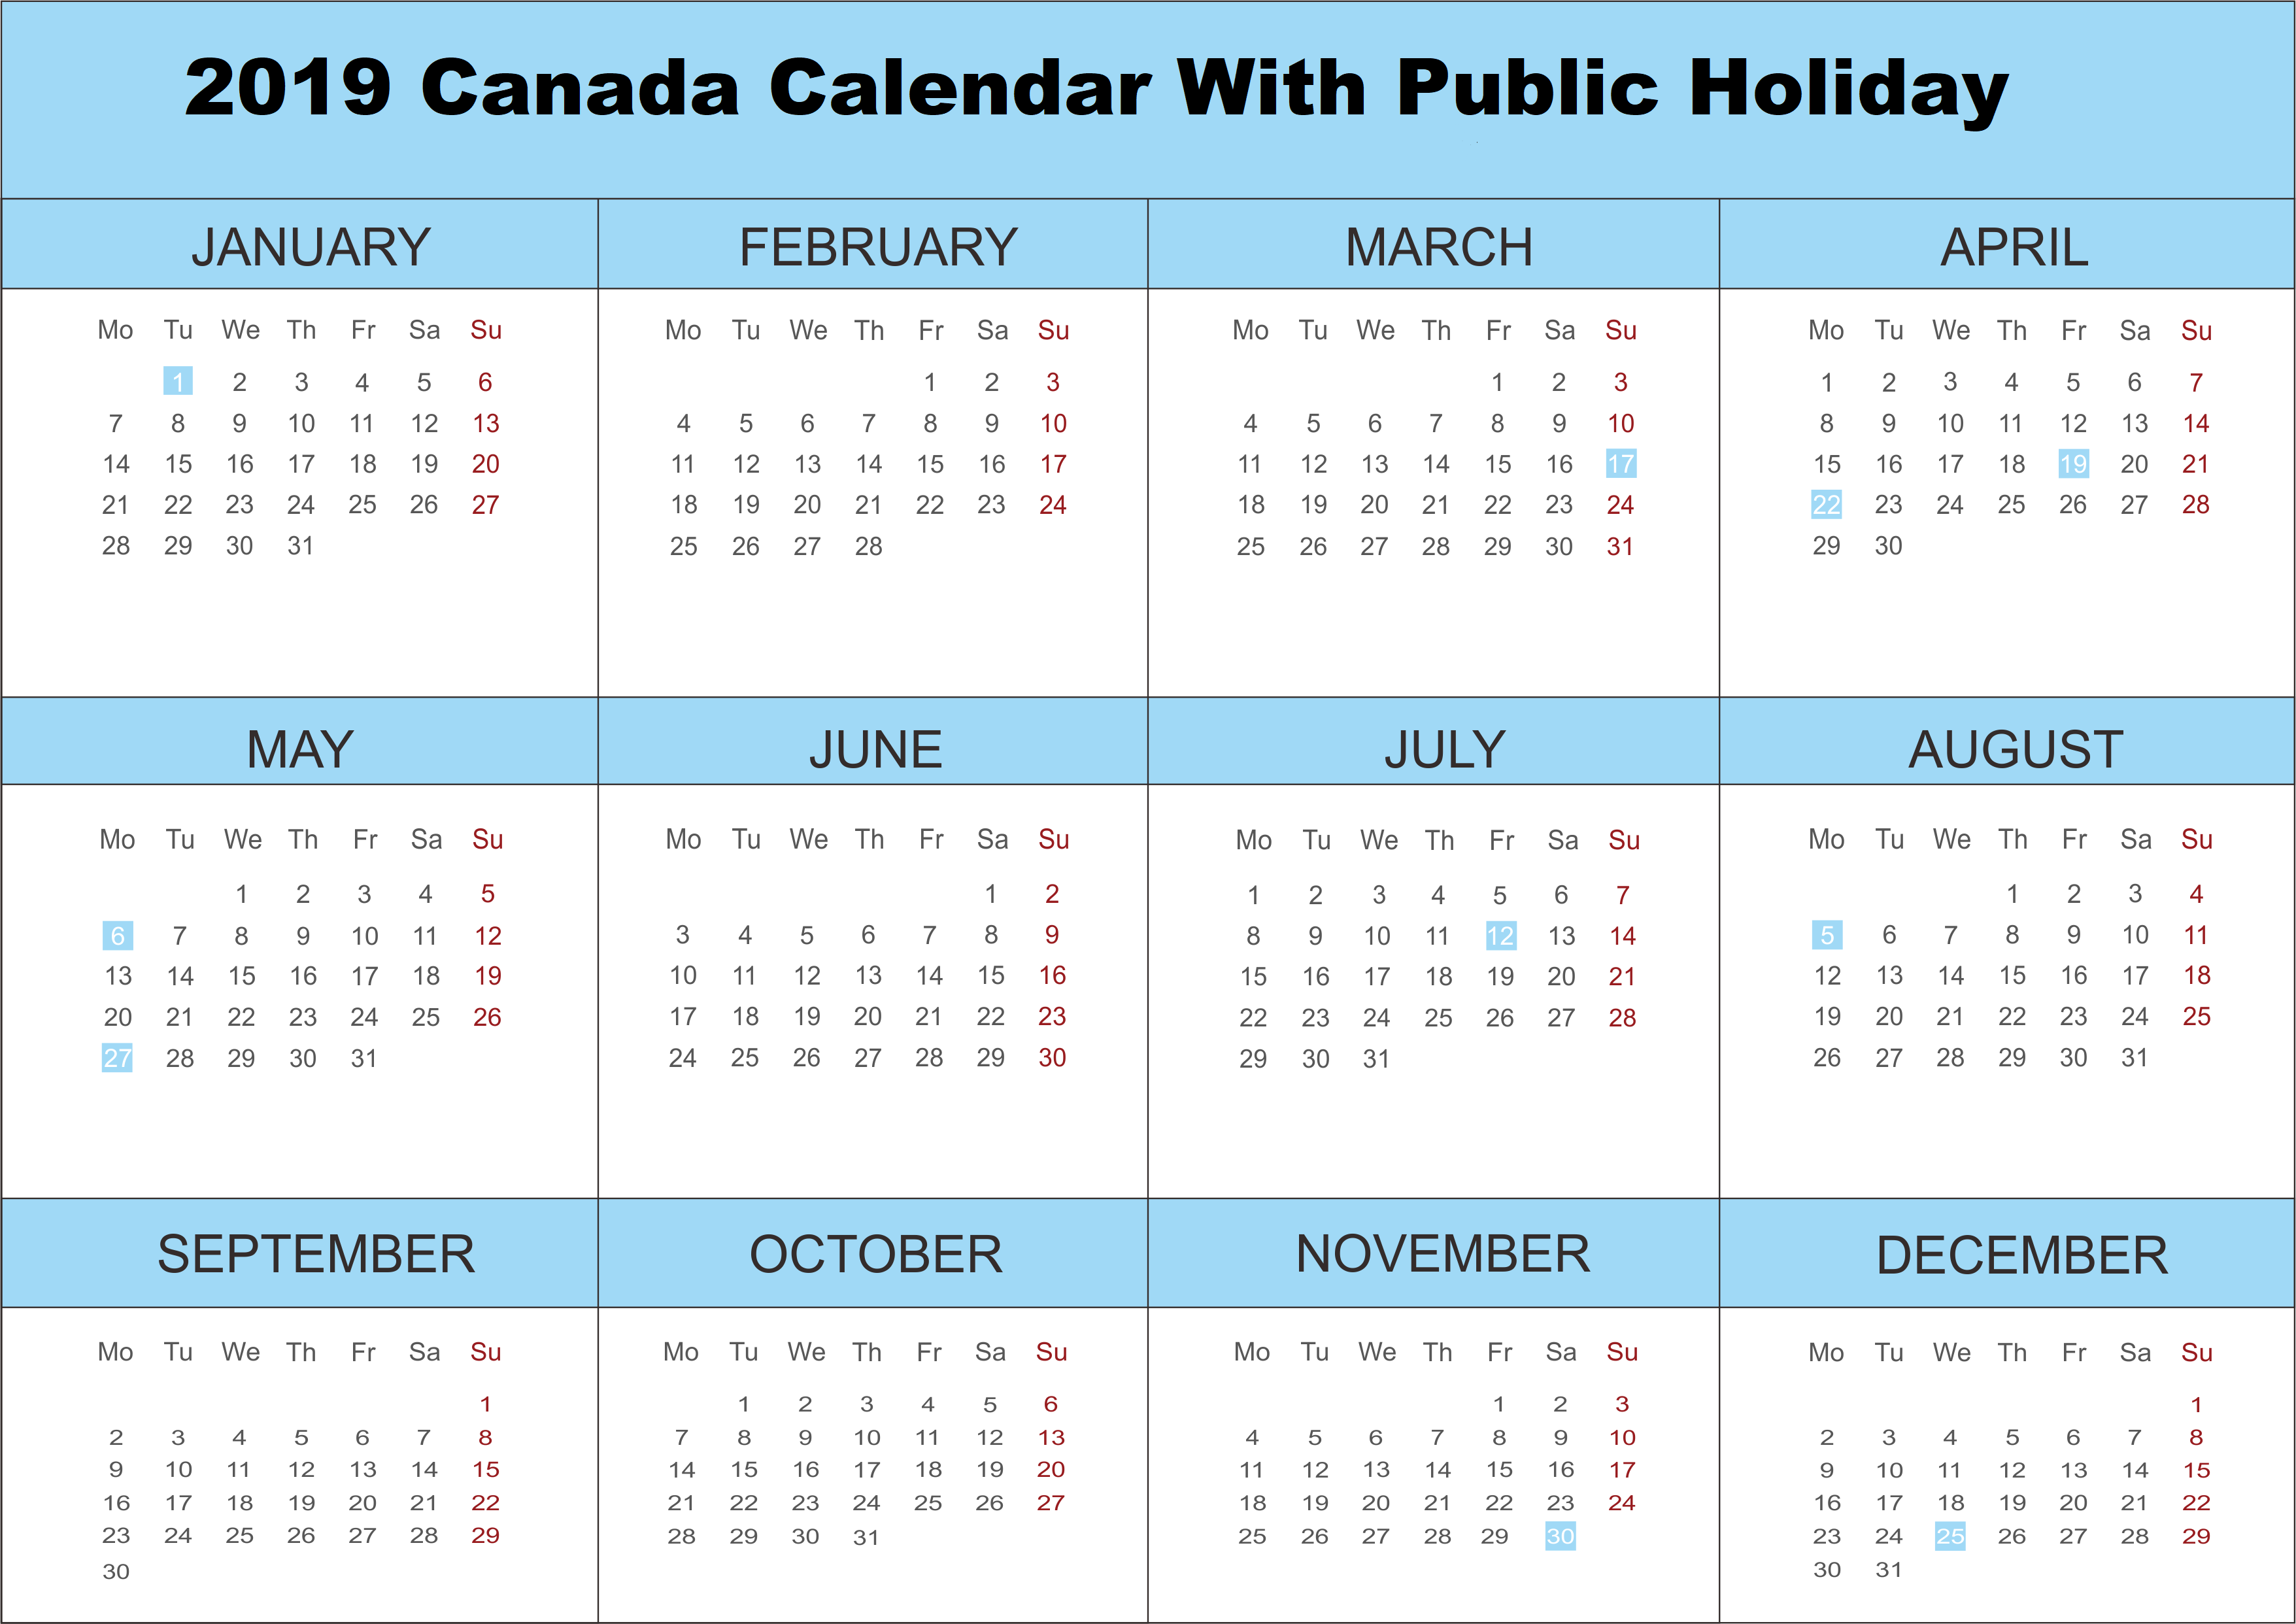 2019 Canada Calendar With Public Holidays